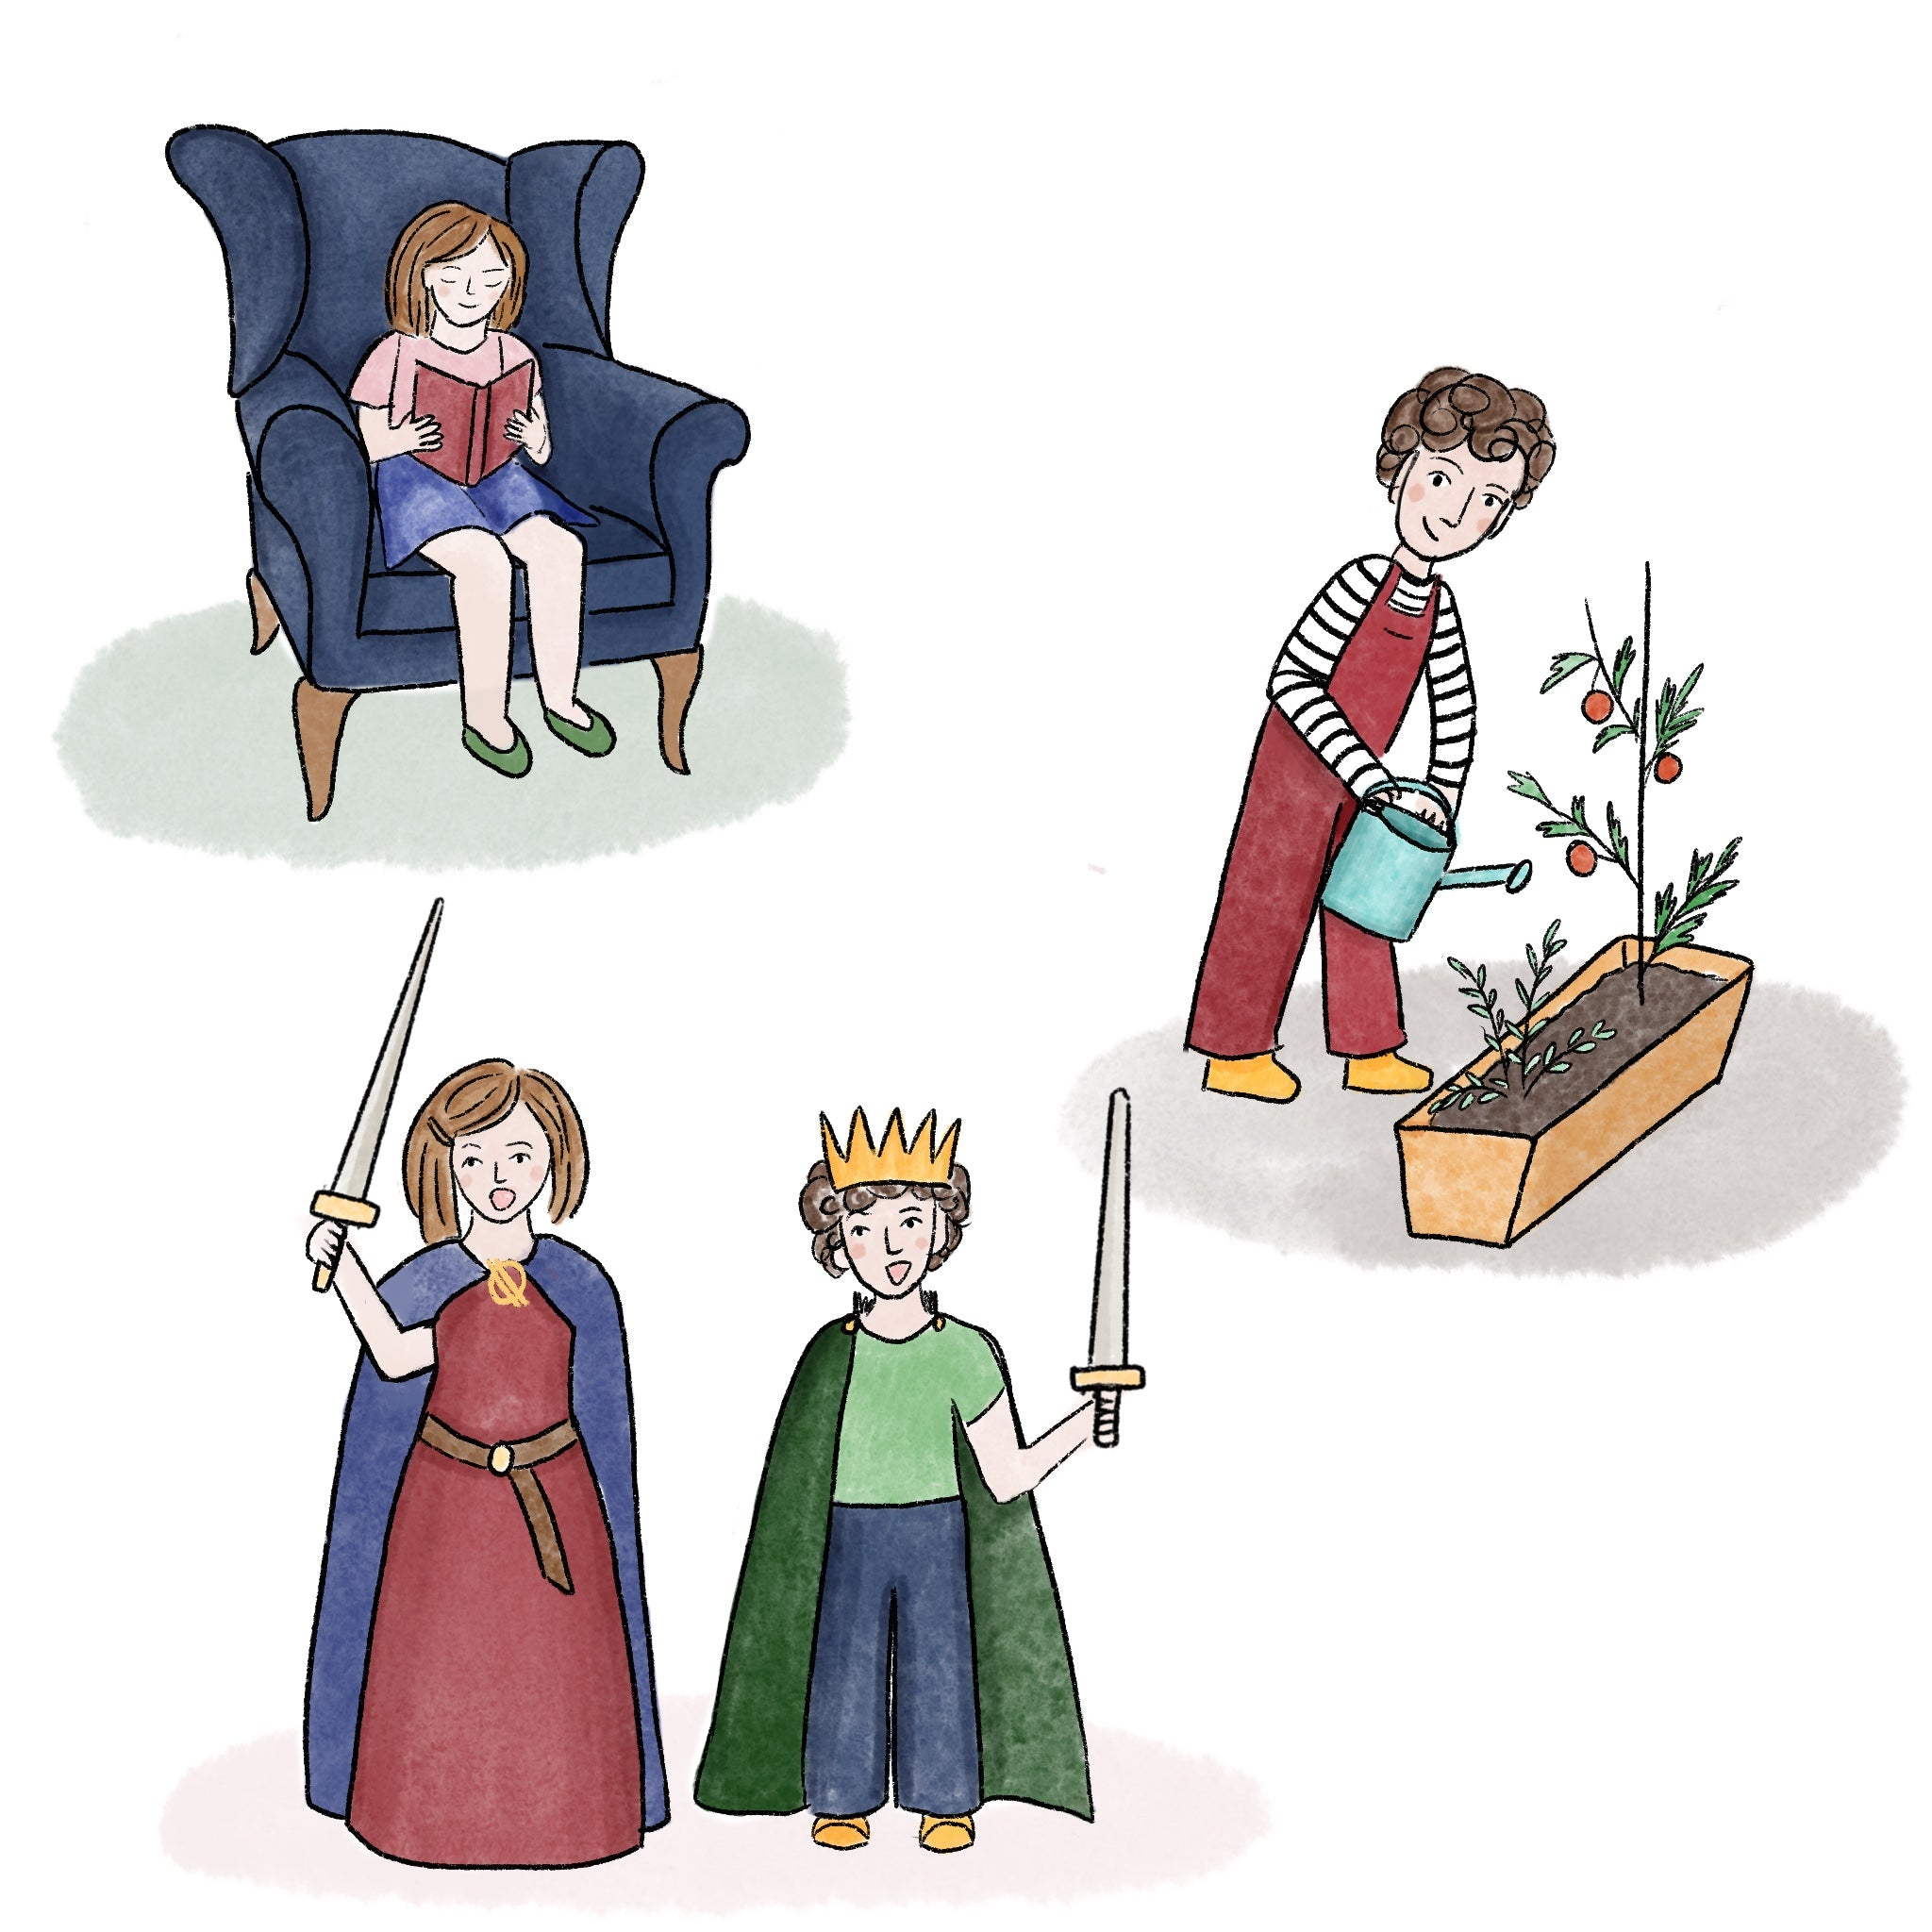 Boy and girl character watering plants, reading a book, dressed up holding toy swords